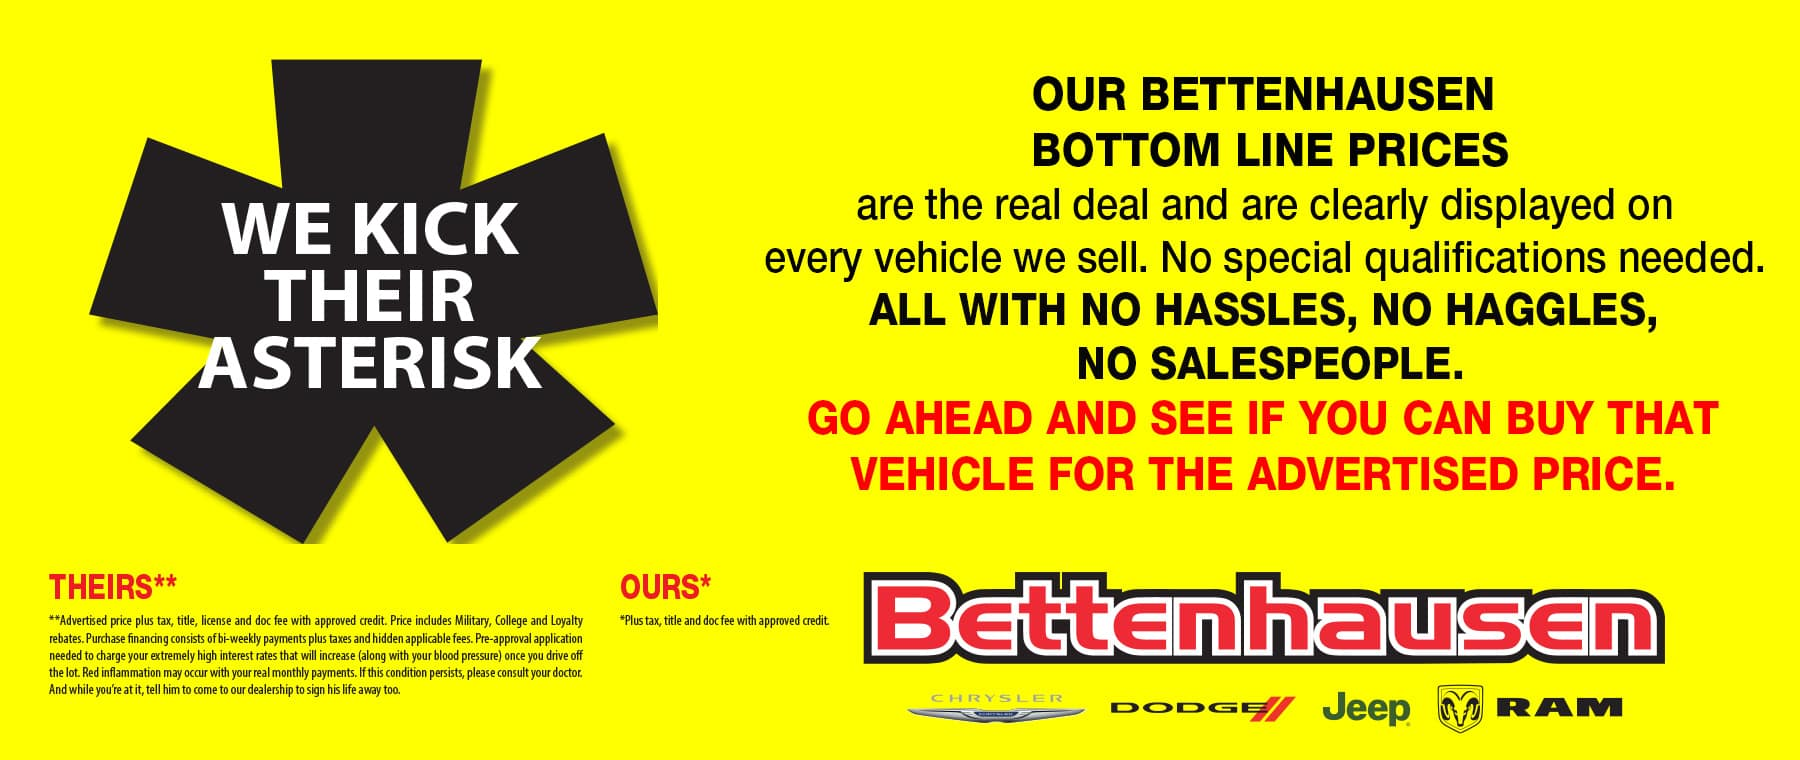 Bettenhausen Bottom Line Prices are the real deal and are clearly displayed on every vehicle we sell. No special qualifications needed. No hassles, no haggles, no salespeople. Our asterisk is smaller than the competition's.